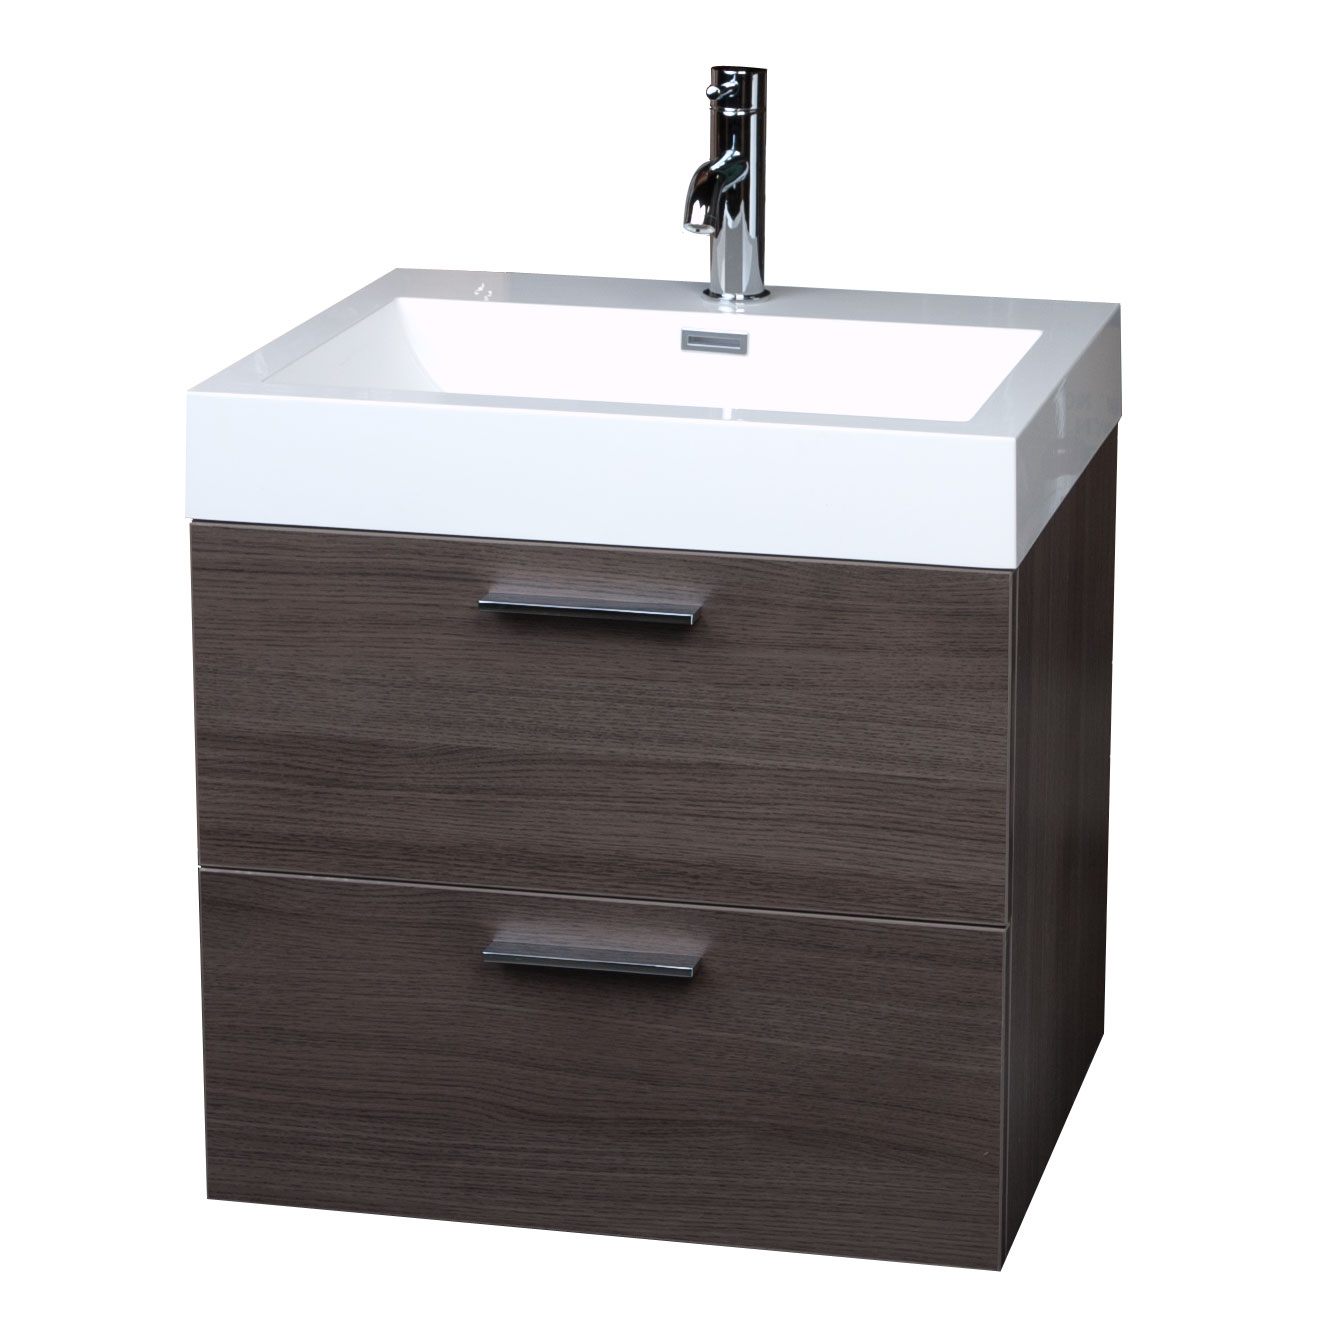 European Styled Single Bathroom Vanity Set In Grey Oak